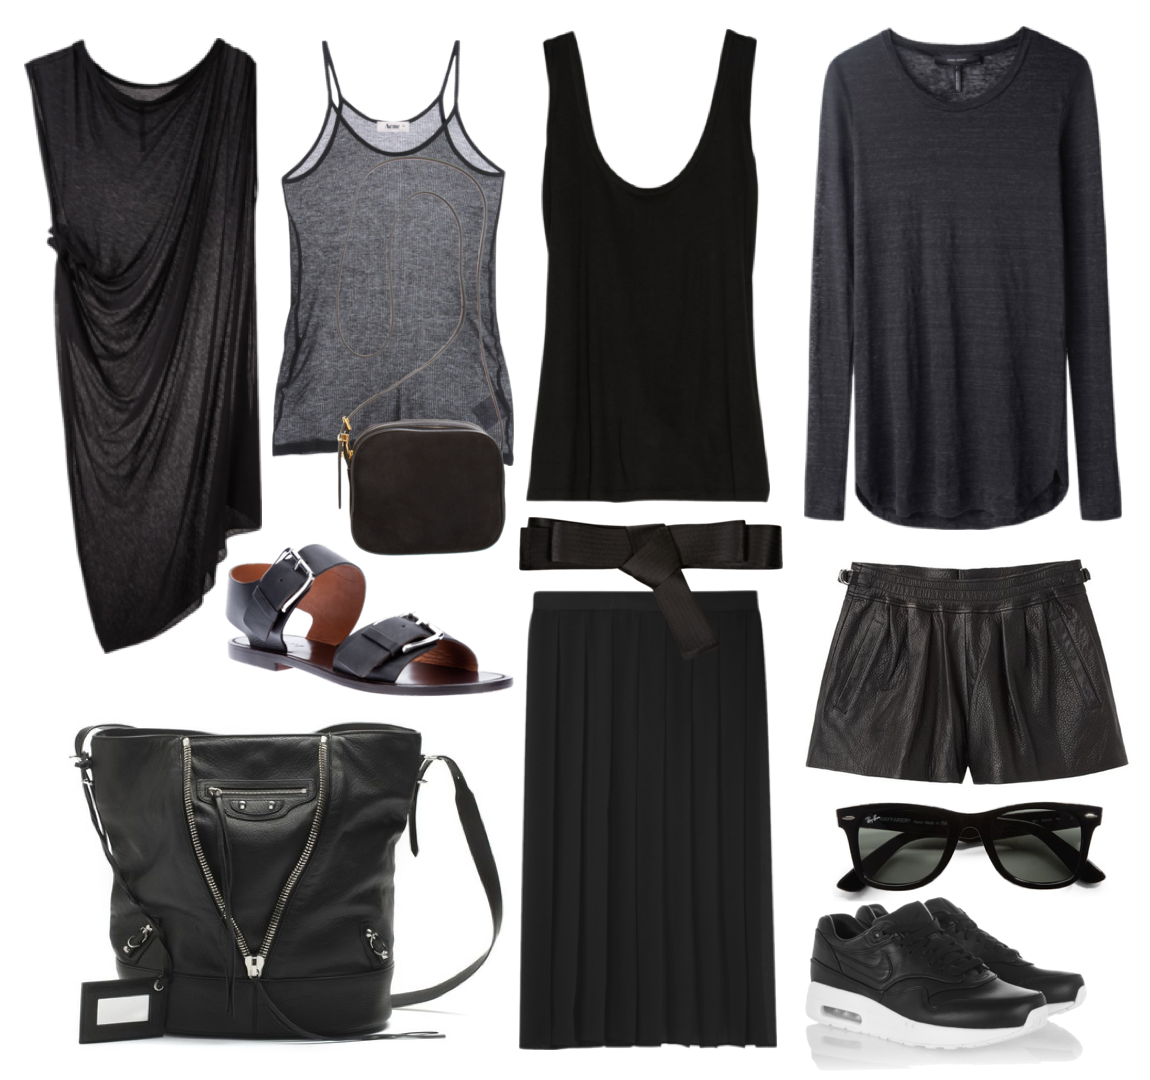 All black essentails - Balenciaga bag, Nike sneakers, The Row bag and clothing, Isabel Marant Etoile top, Lanvin belt, Rick Owens & Acne